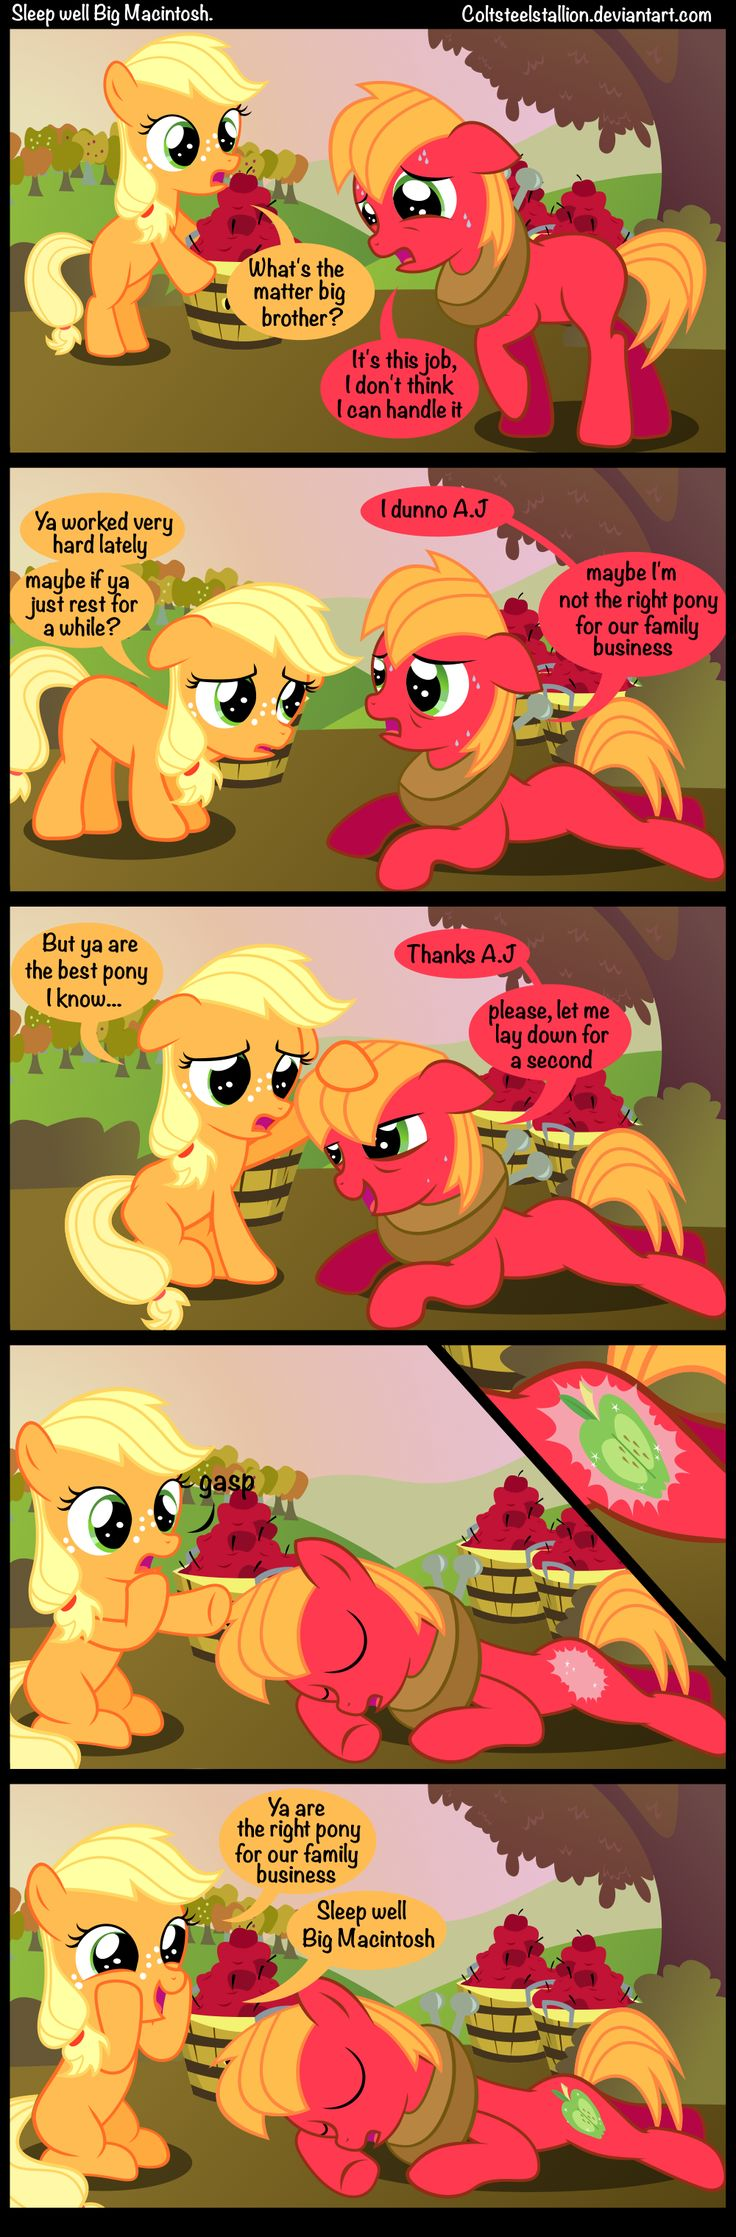 sleep well Big Macintosh. by Coltsteelstallion.deviantart.com on @deviantART